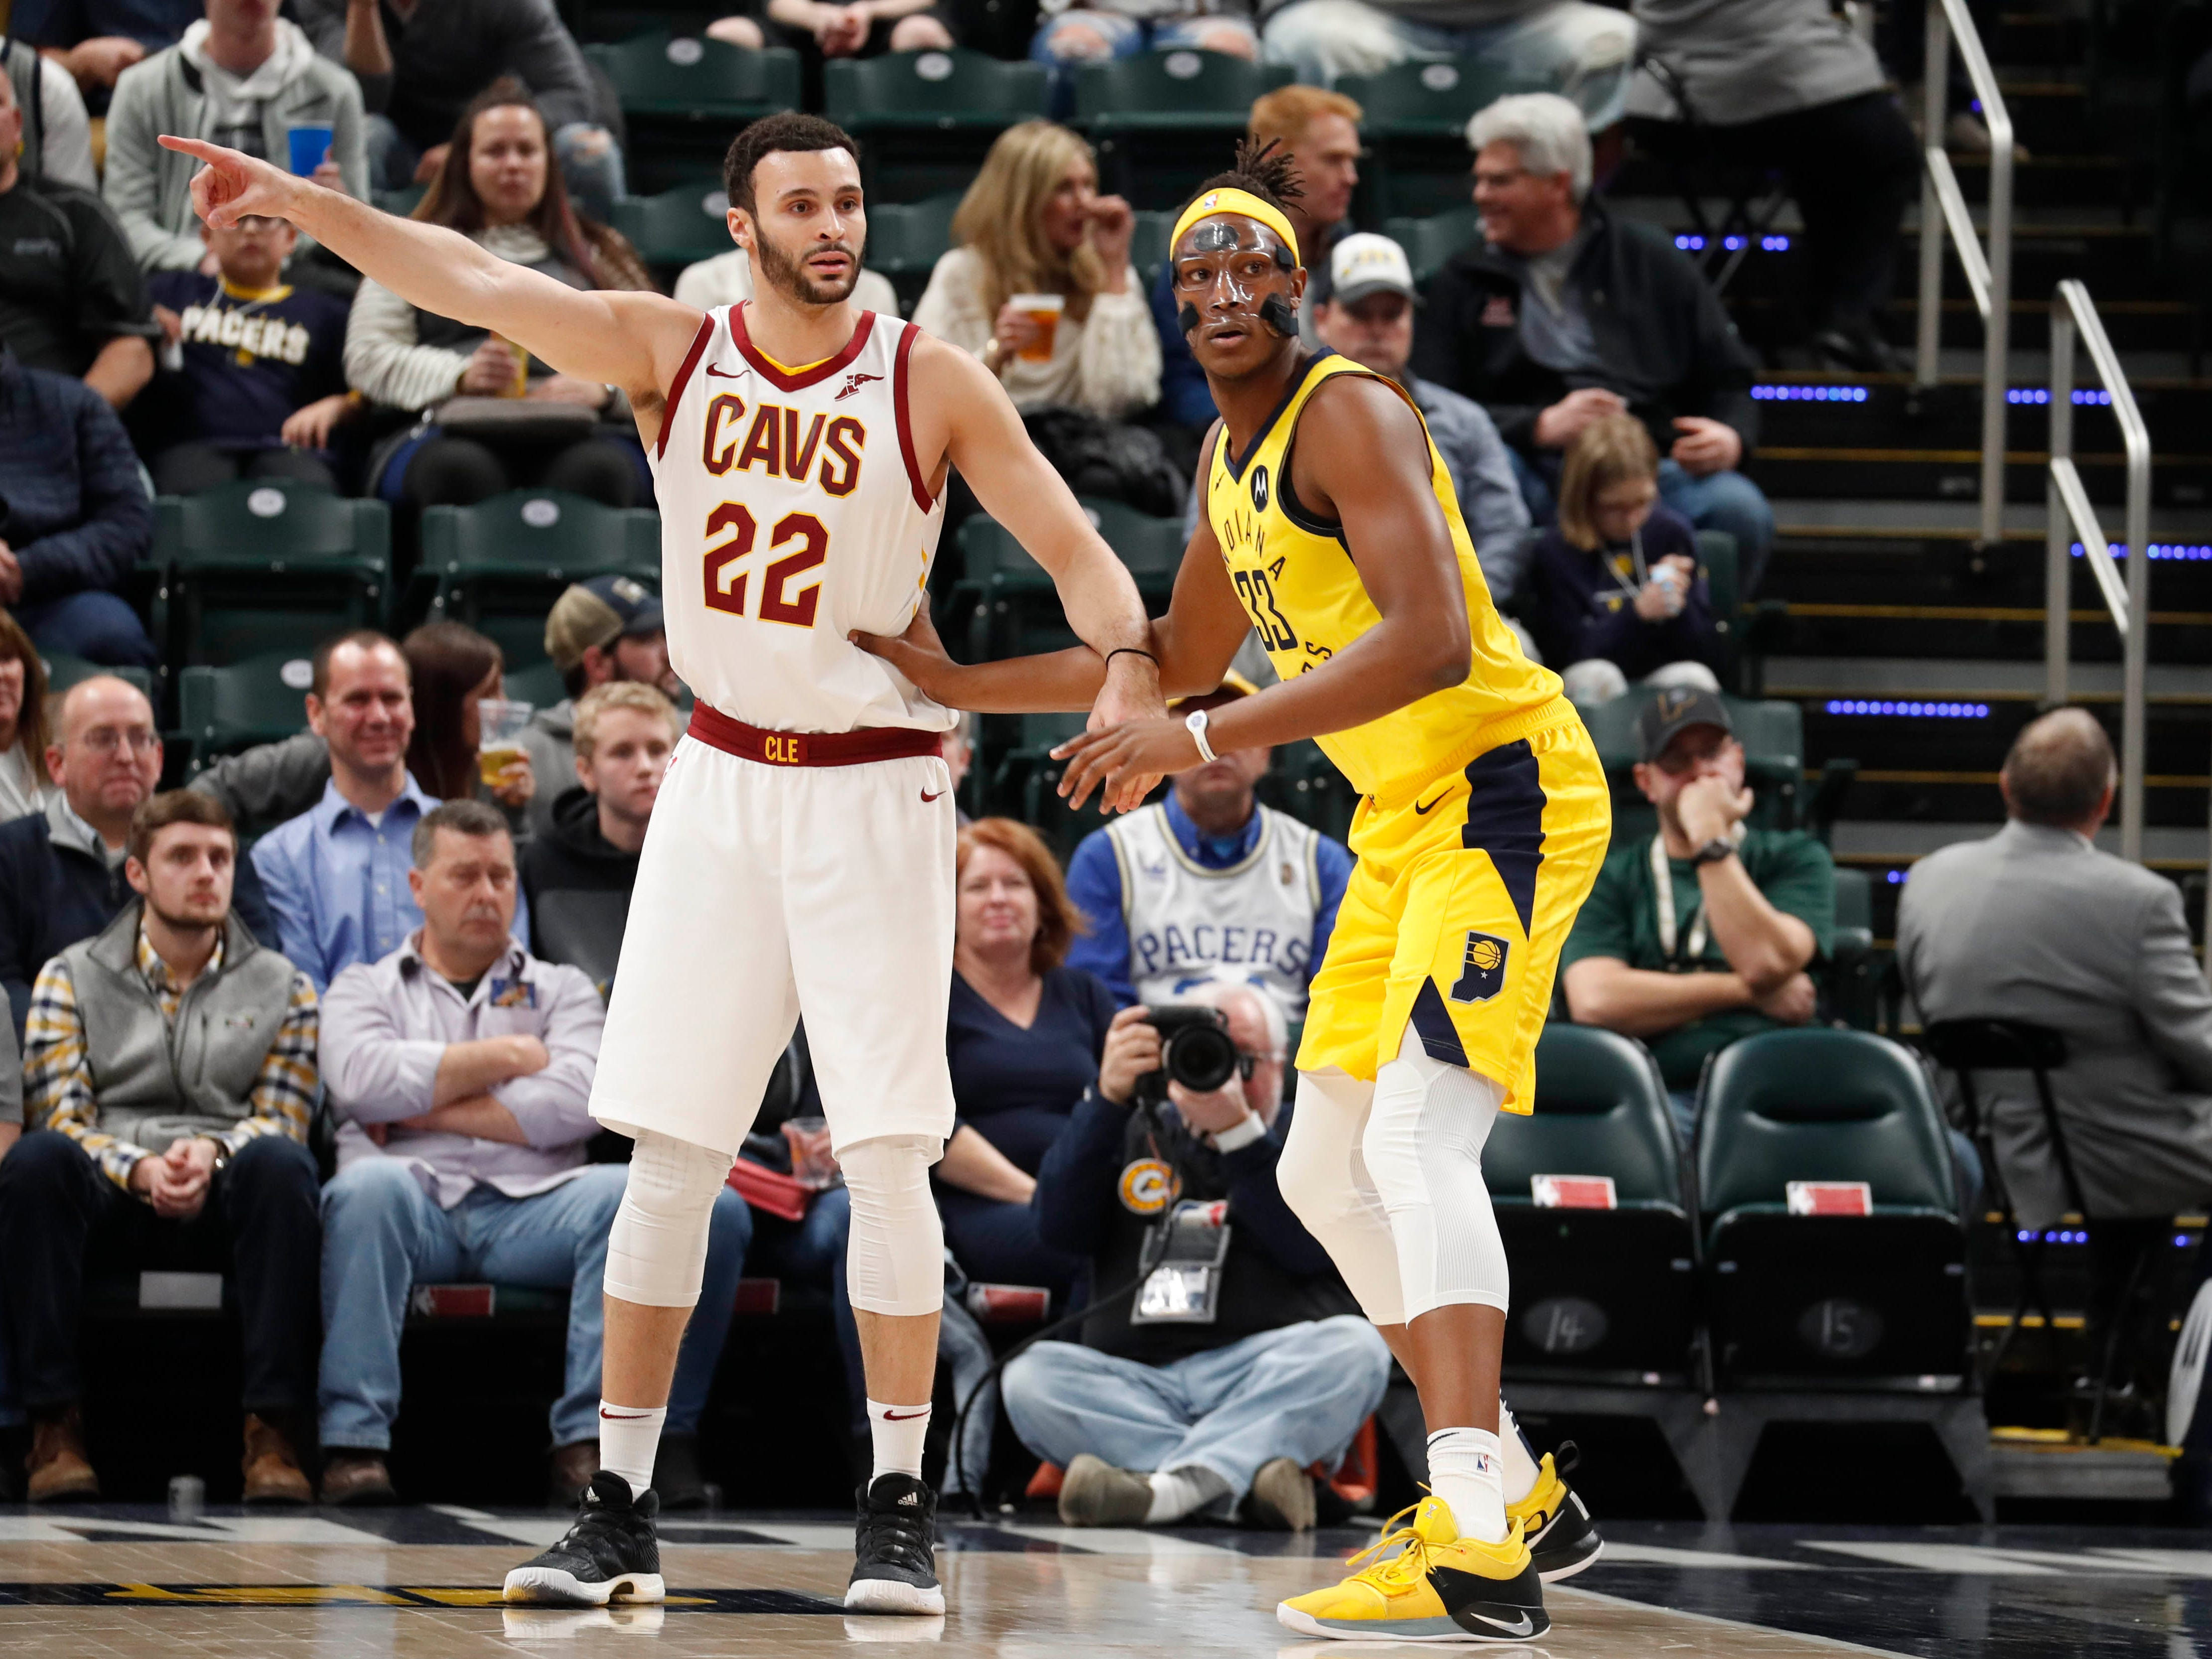 Feb 9, 2019; Indianapolis, IN, USA; Cleveland Cavaliers forward Larry Nance Jr. (22) is guarded by Indiana Pacers center Myles Turner (33) during the first quarter at Bankers Life Fieldhouse. Mandatory Credit: Brian Spurlock-USA TODAY Sports